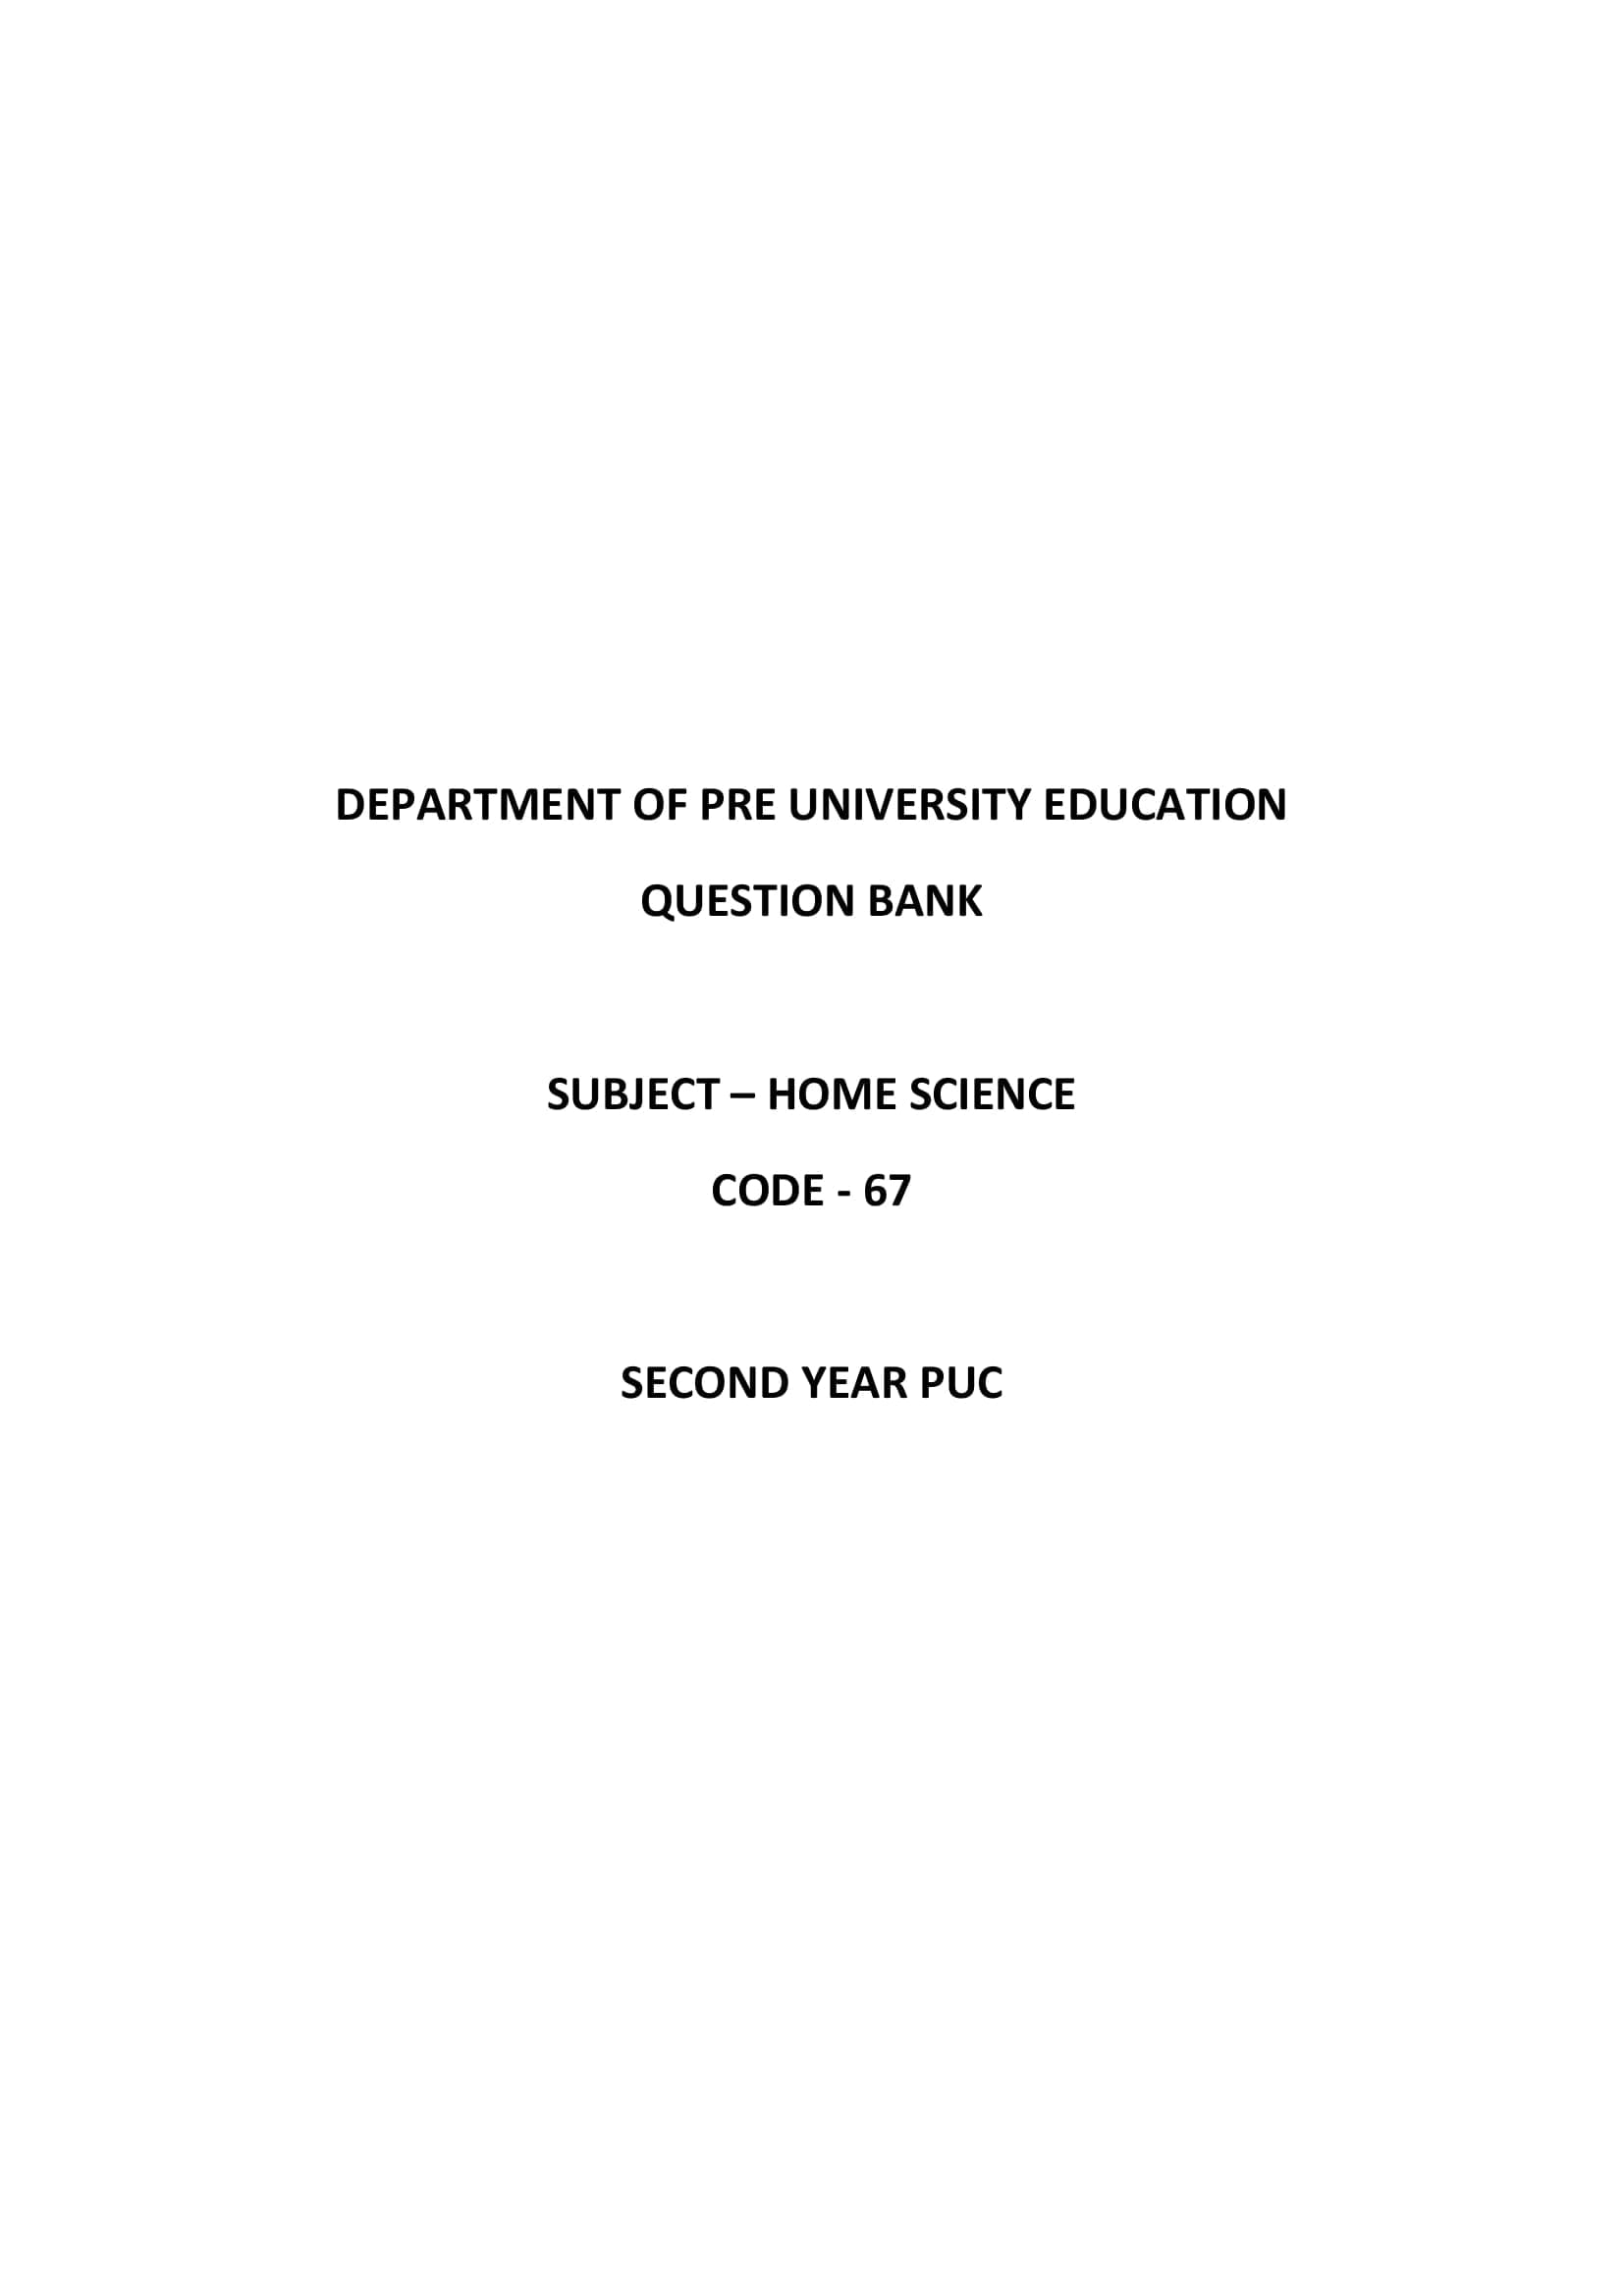 Karnataka 2nd PUC Question Bank for Home Science